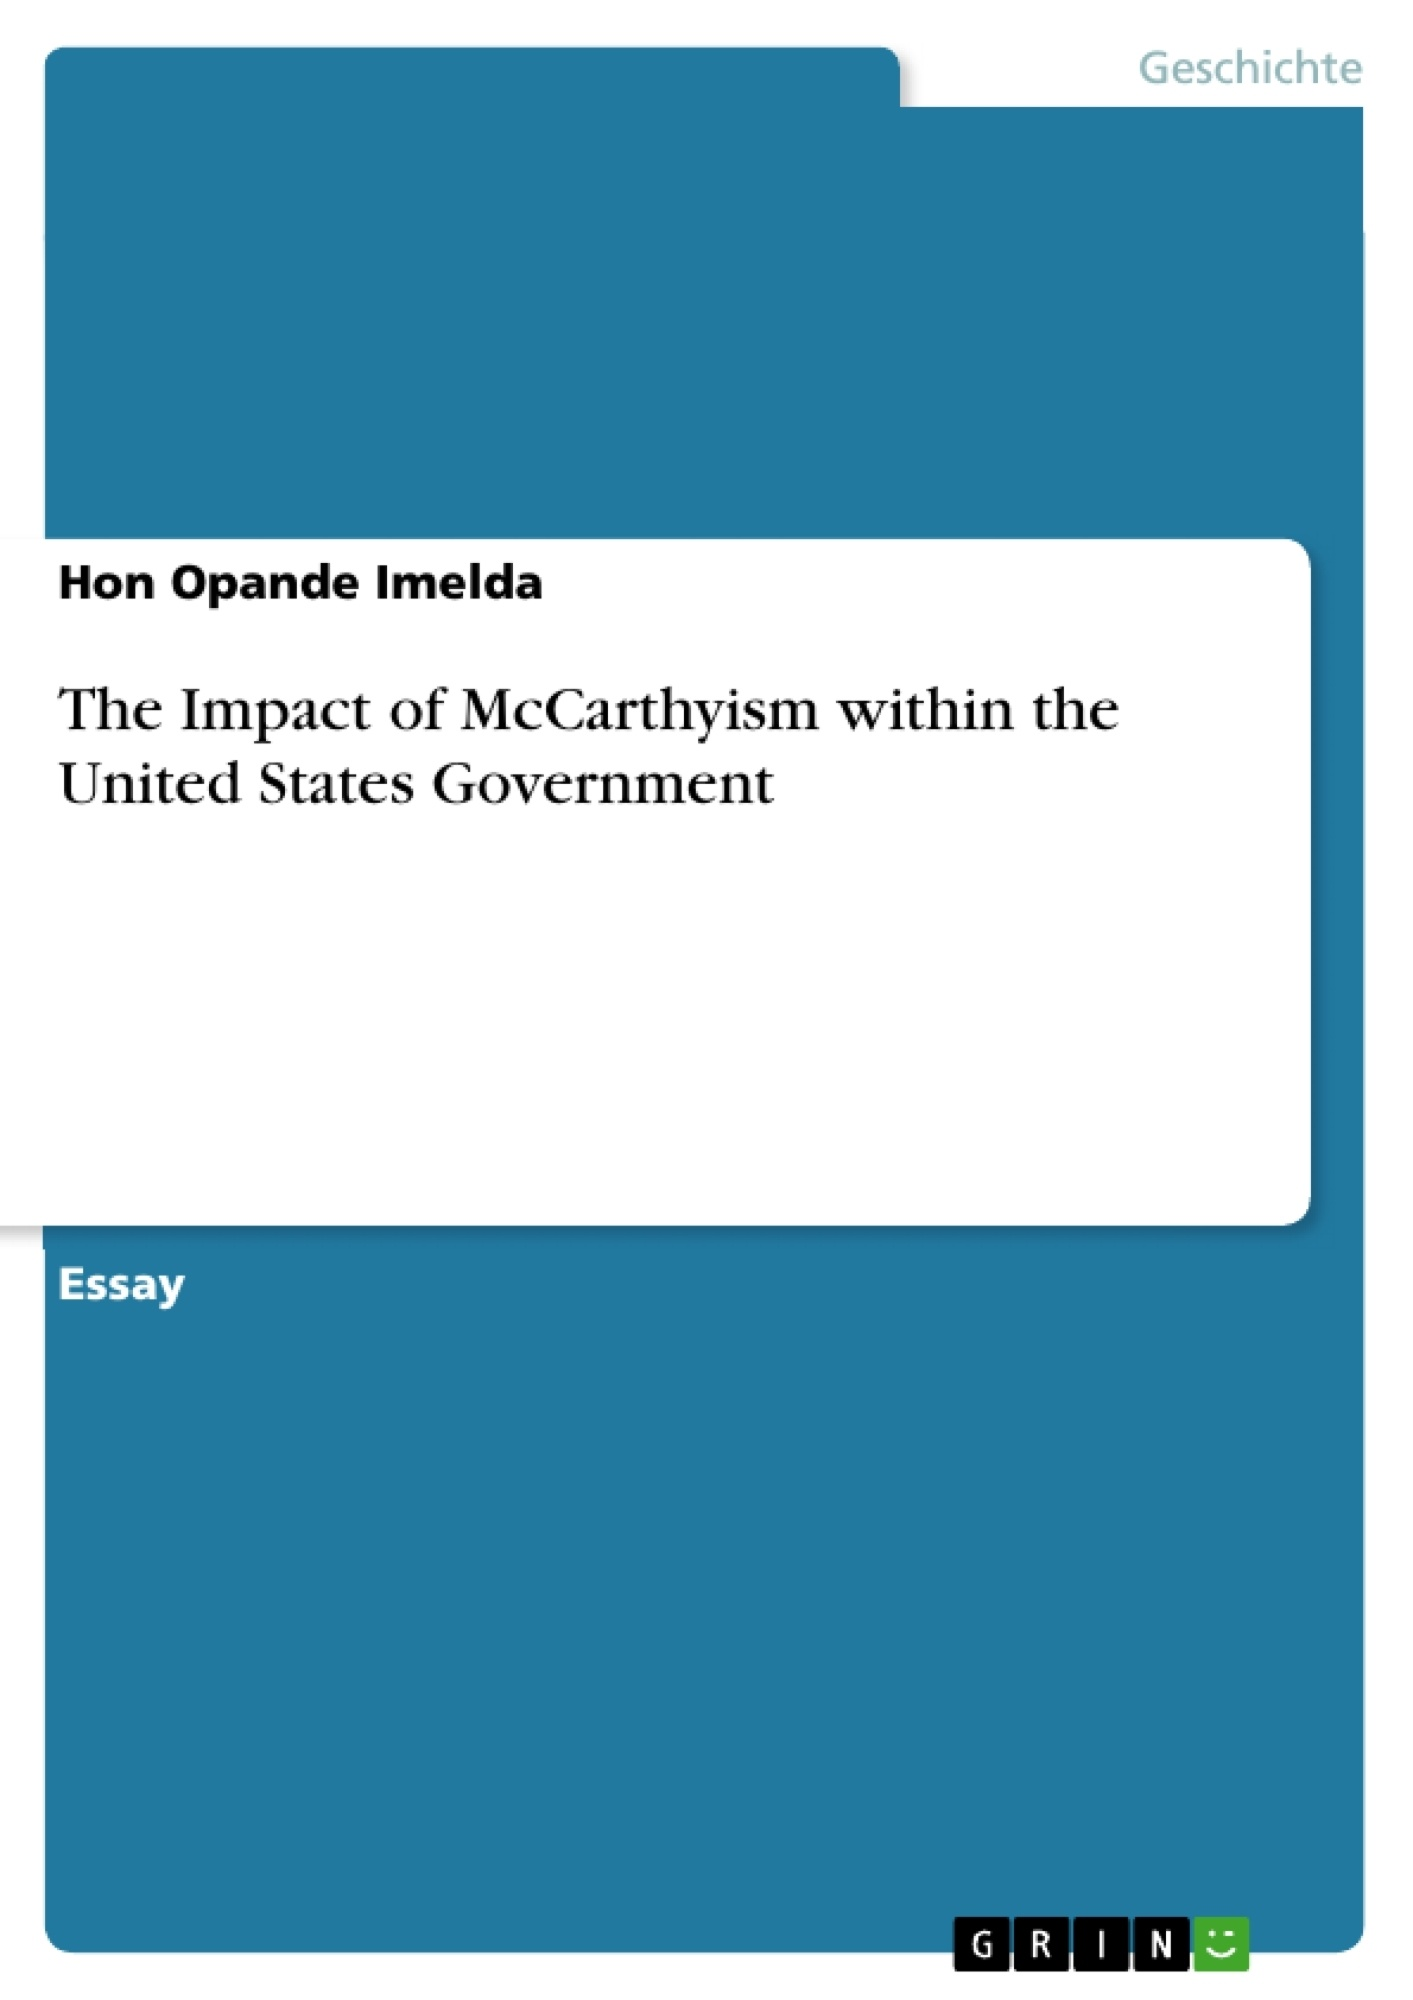 Titel: The Impact of McCarthyism within the United States Government